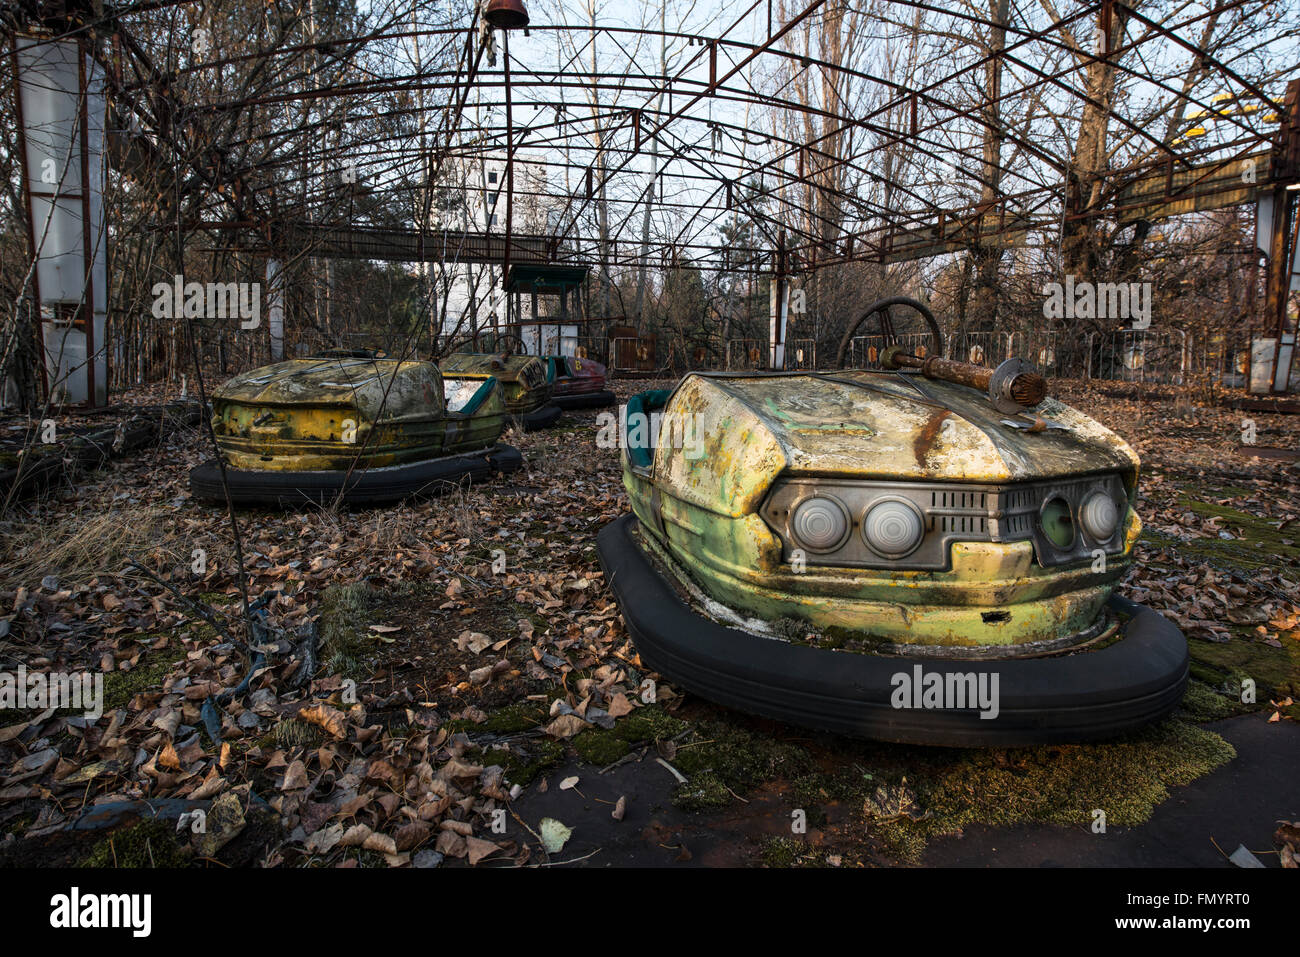 Abandoned dodgem cars in amusement park of Pripyat, Chernobyl scene of 1986 nuclear disaster - Stock Image